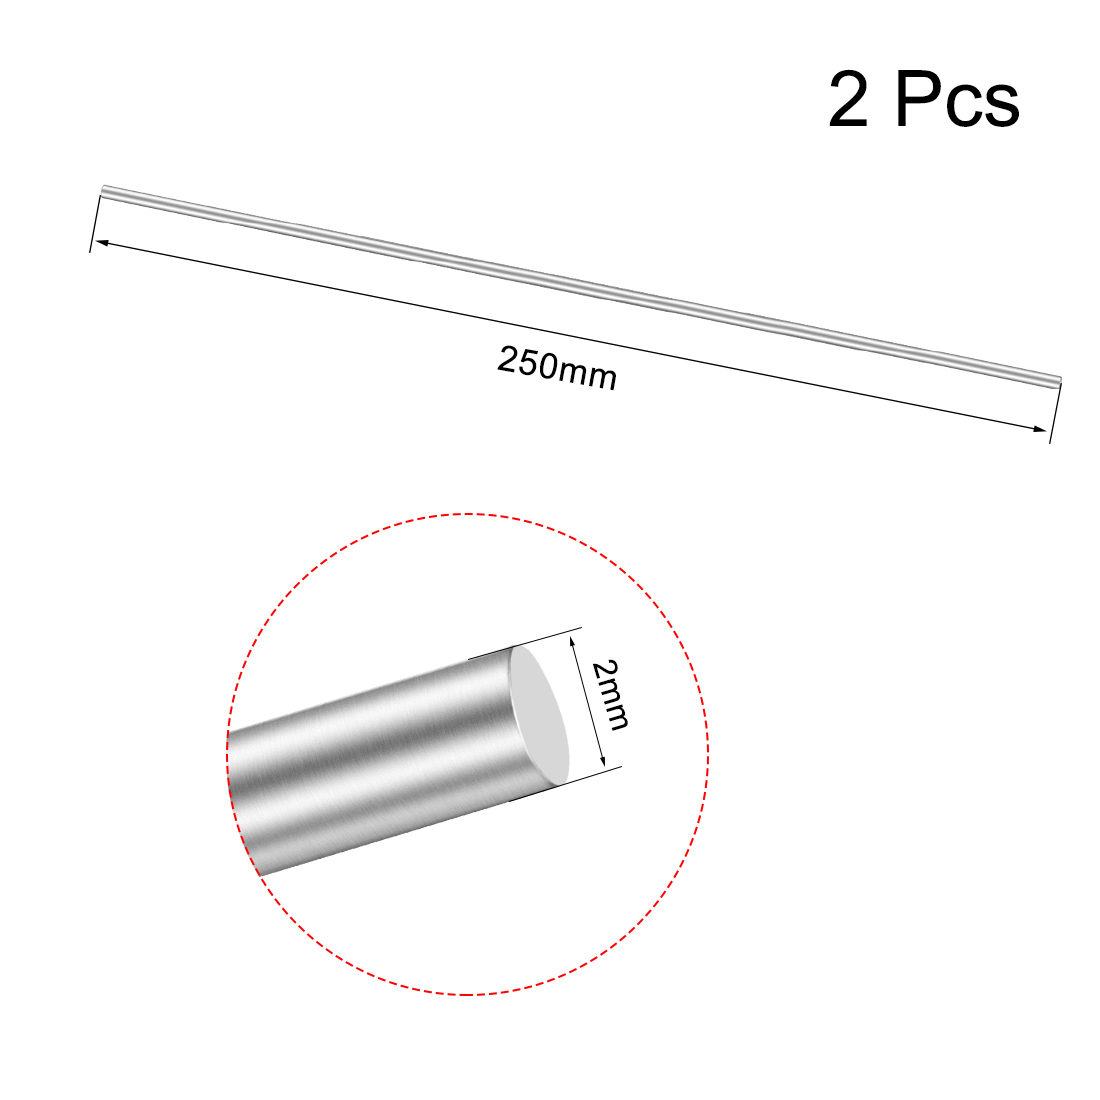 2-5-10-20Pcs-Hollow-Stainless-Steel-Shaft-Round-Rod-for-DIY-Toy-RC-Car-Model thumbnail 3